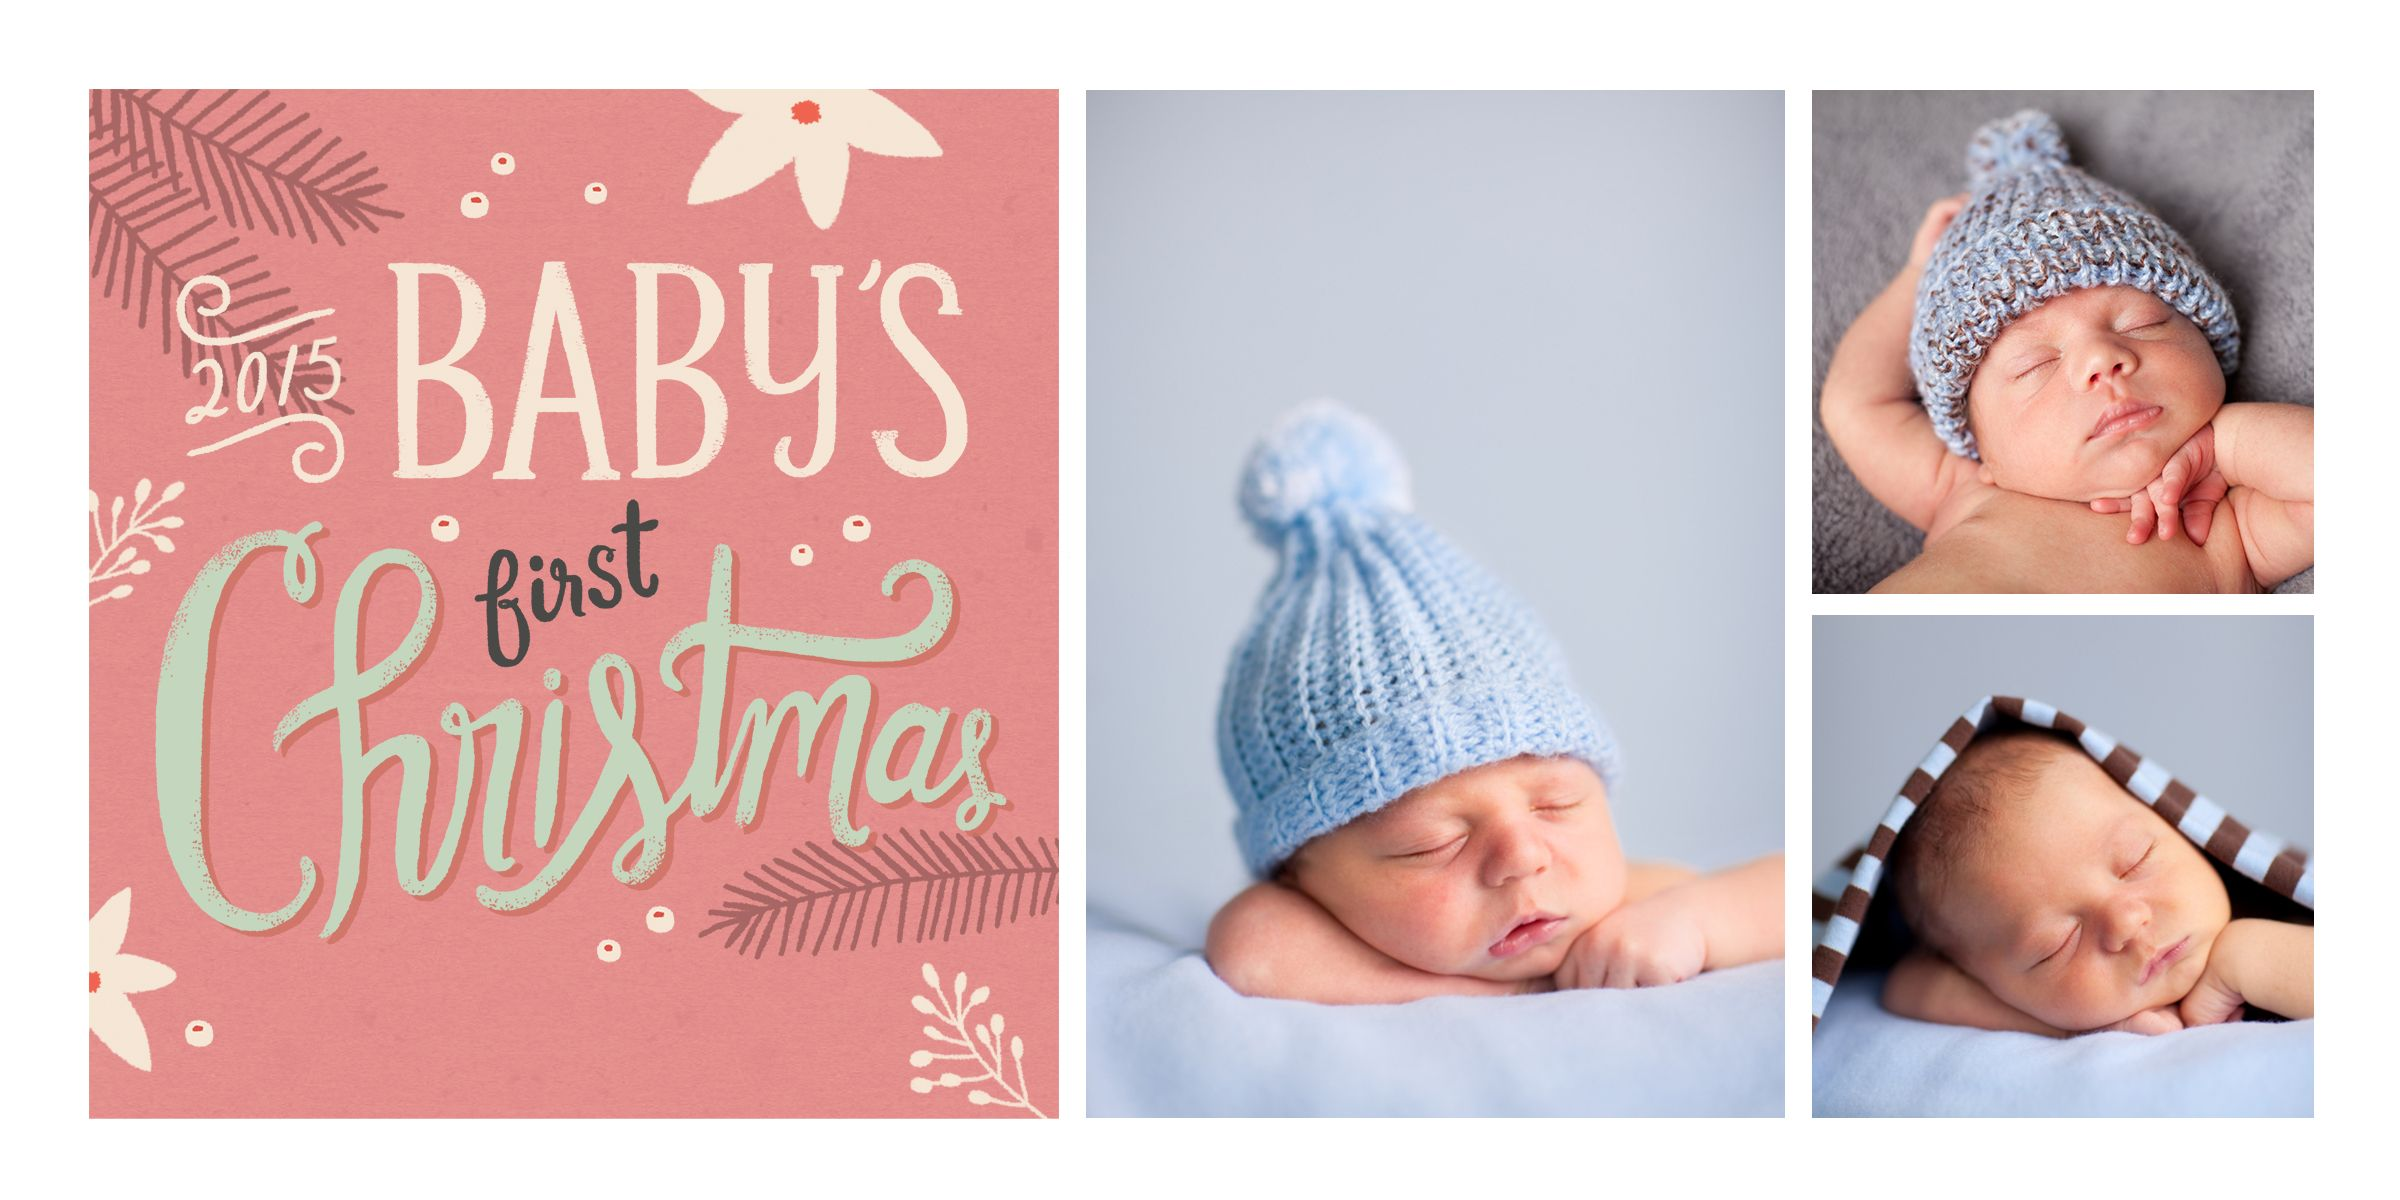 Its an extra special year for you and baby share the joy